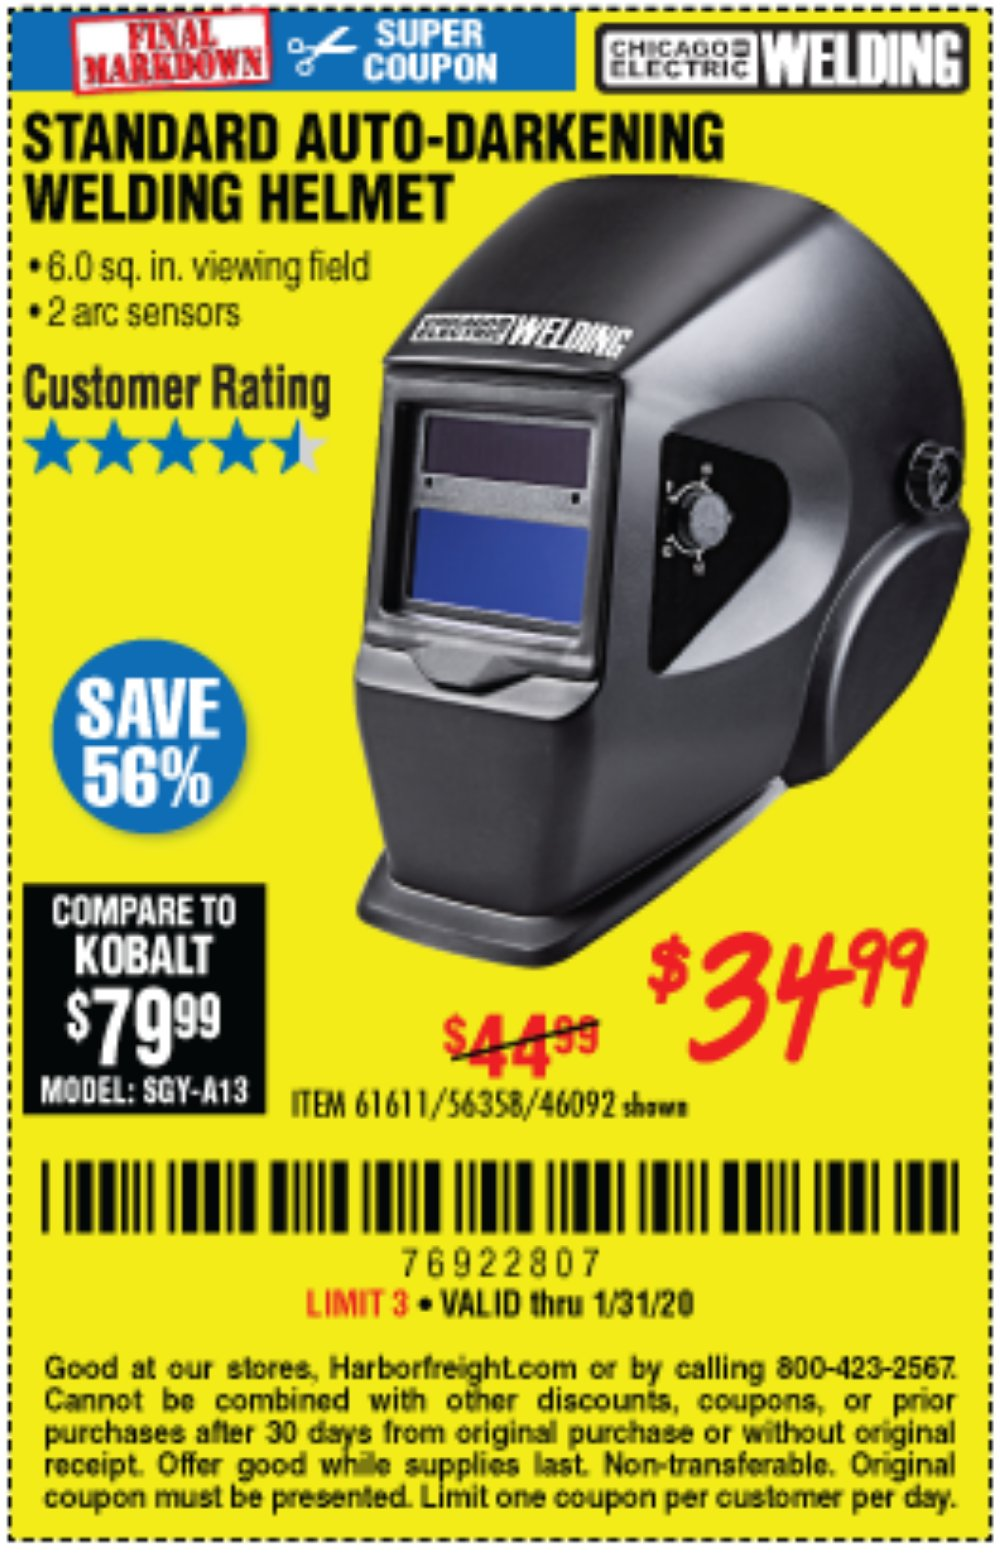 Harbor Freight Coupon, HF Coupons - Adjustable Shade Auto-darkening Welding Helmet